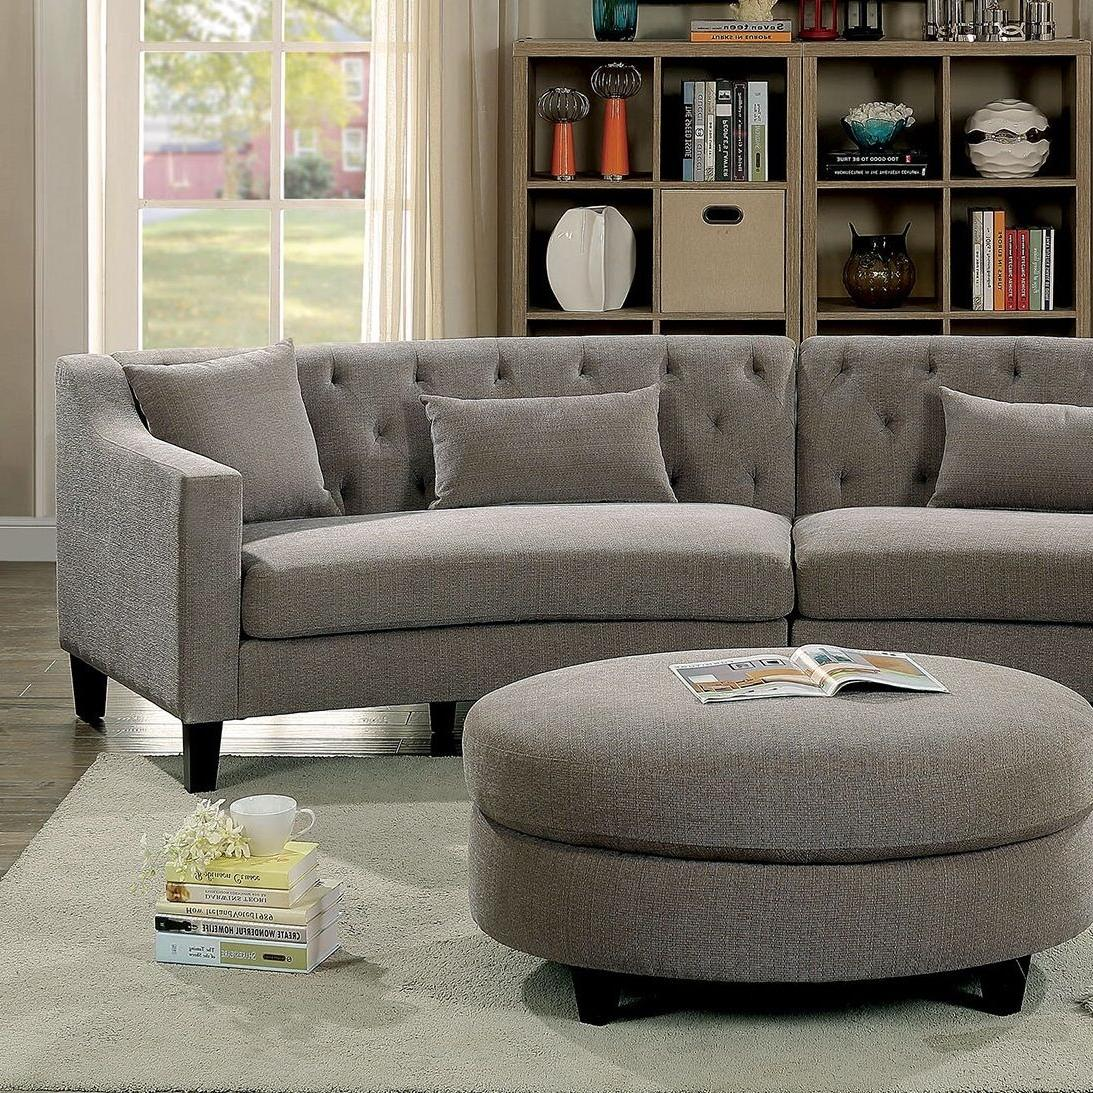 Living Room Unique Tufted Couch Wood